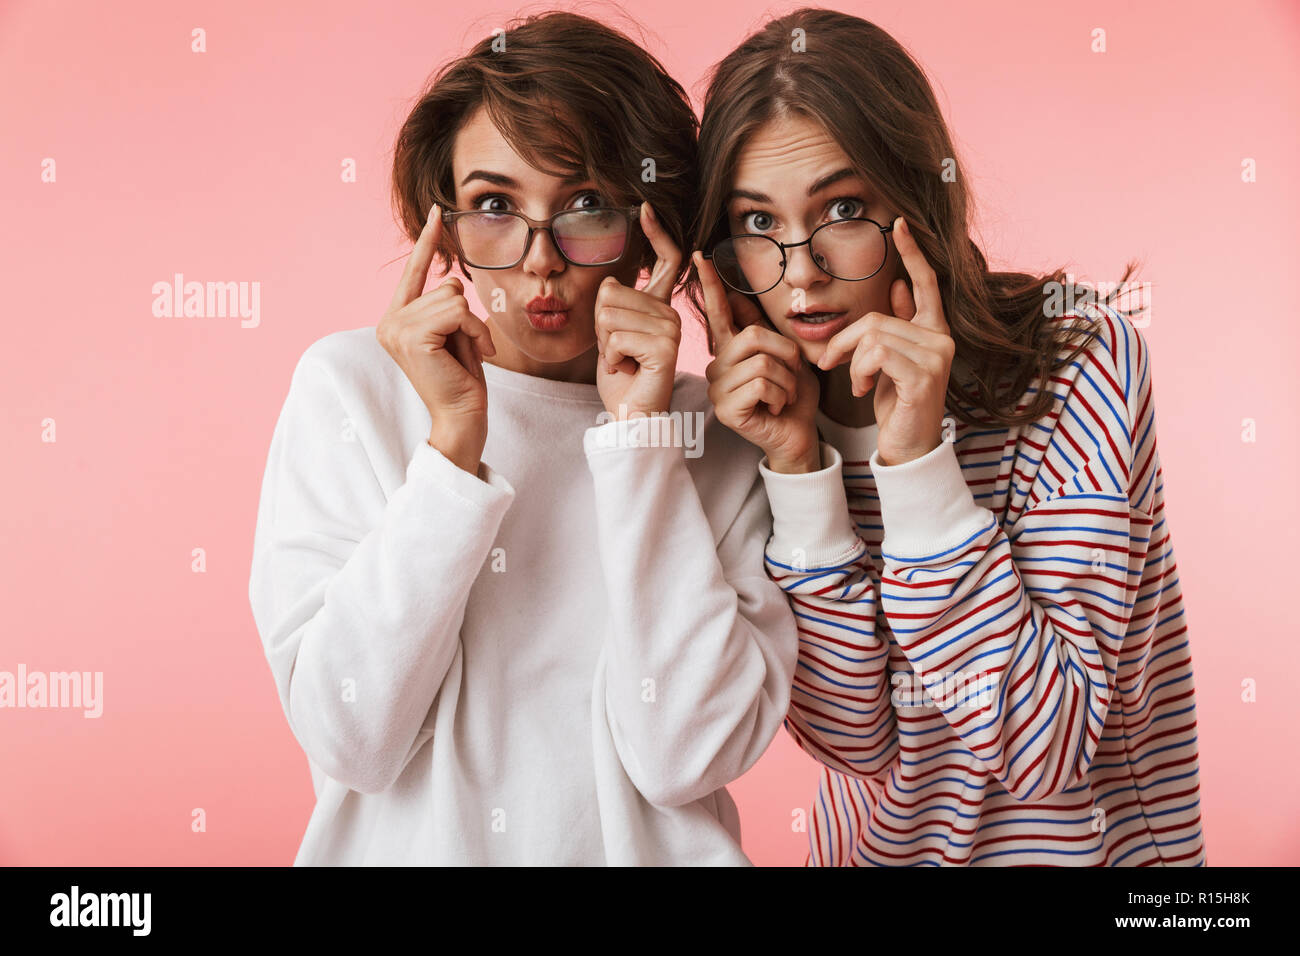 b6abe05339 Image of shocked emotional young women friends posing isolated over pink  background. - Stock Image